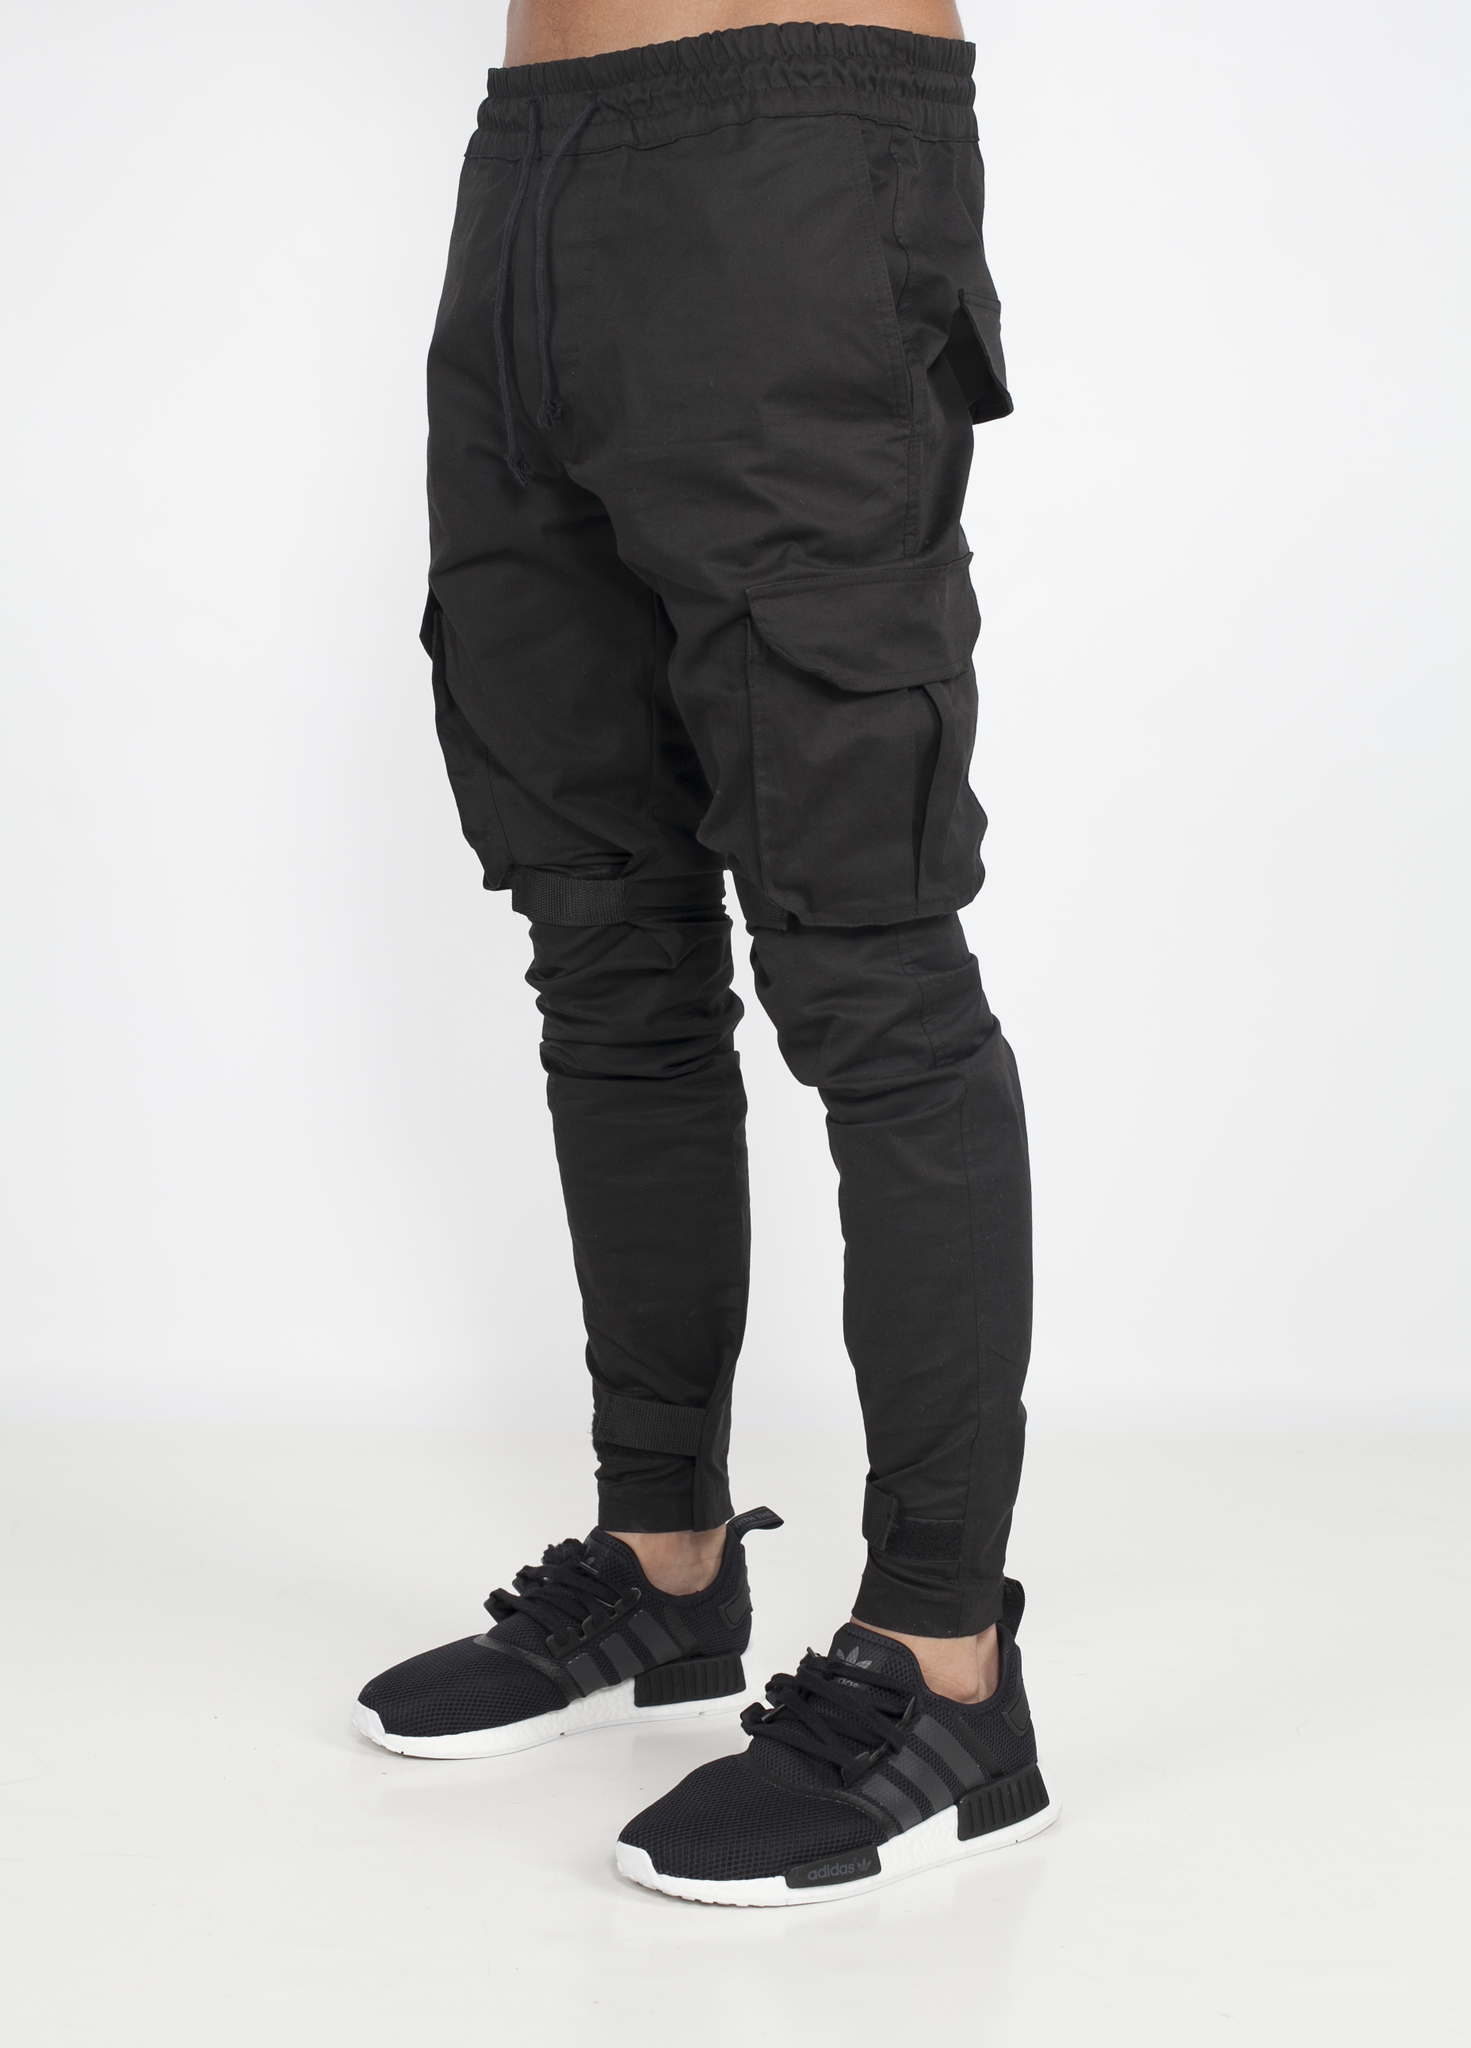 Black Cotton pant scratch & Comfy fit Velcro Scratch/Strap on ankles and  knees No fly - No behind PocketsZips on the back of ankles Made in France